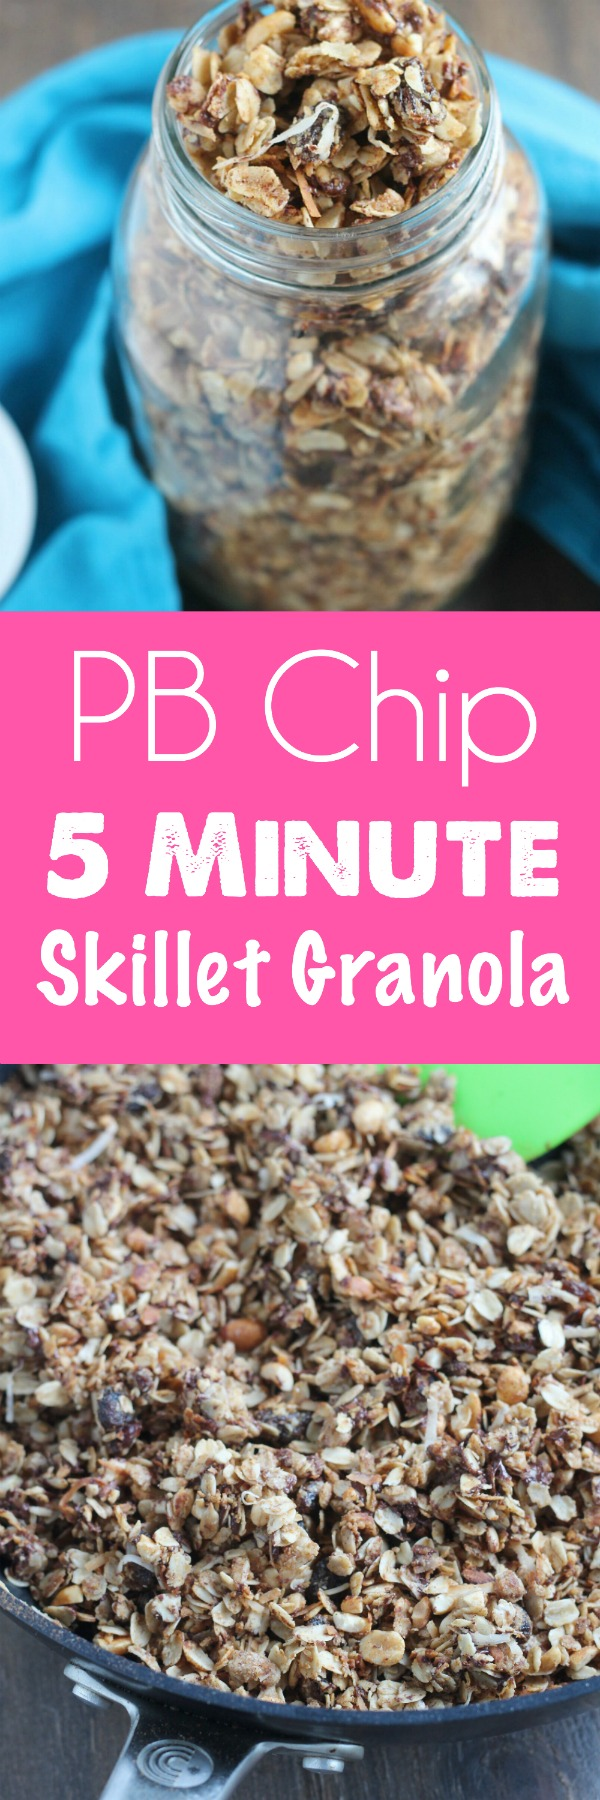 Healthy Peanut Butter Chip Skillet Granola! Uses coconut oil and your typical granola favorites. Perfect for breakfast parfaits or a snack. Made in a skillet in 5-minutes--no buring here! via @DashOfEvans